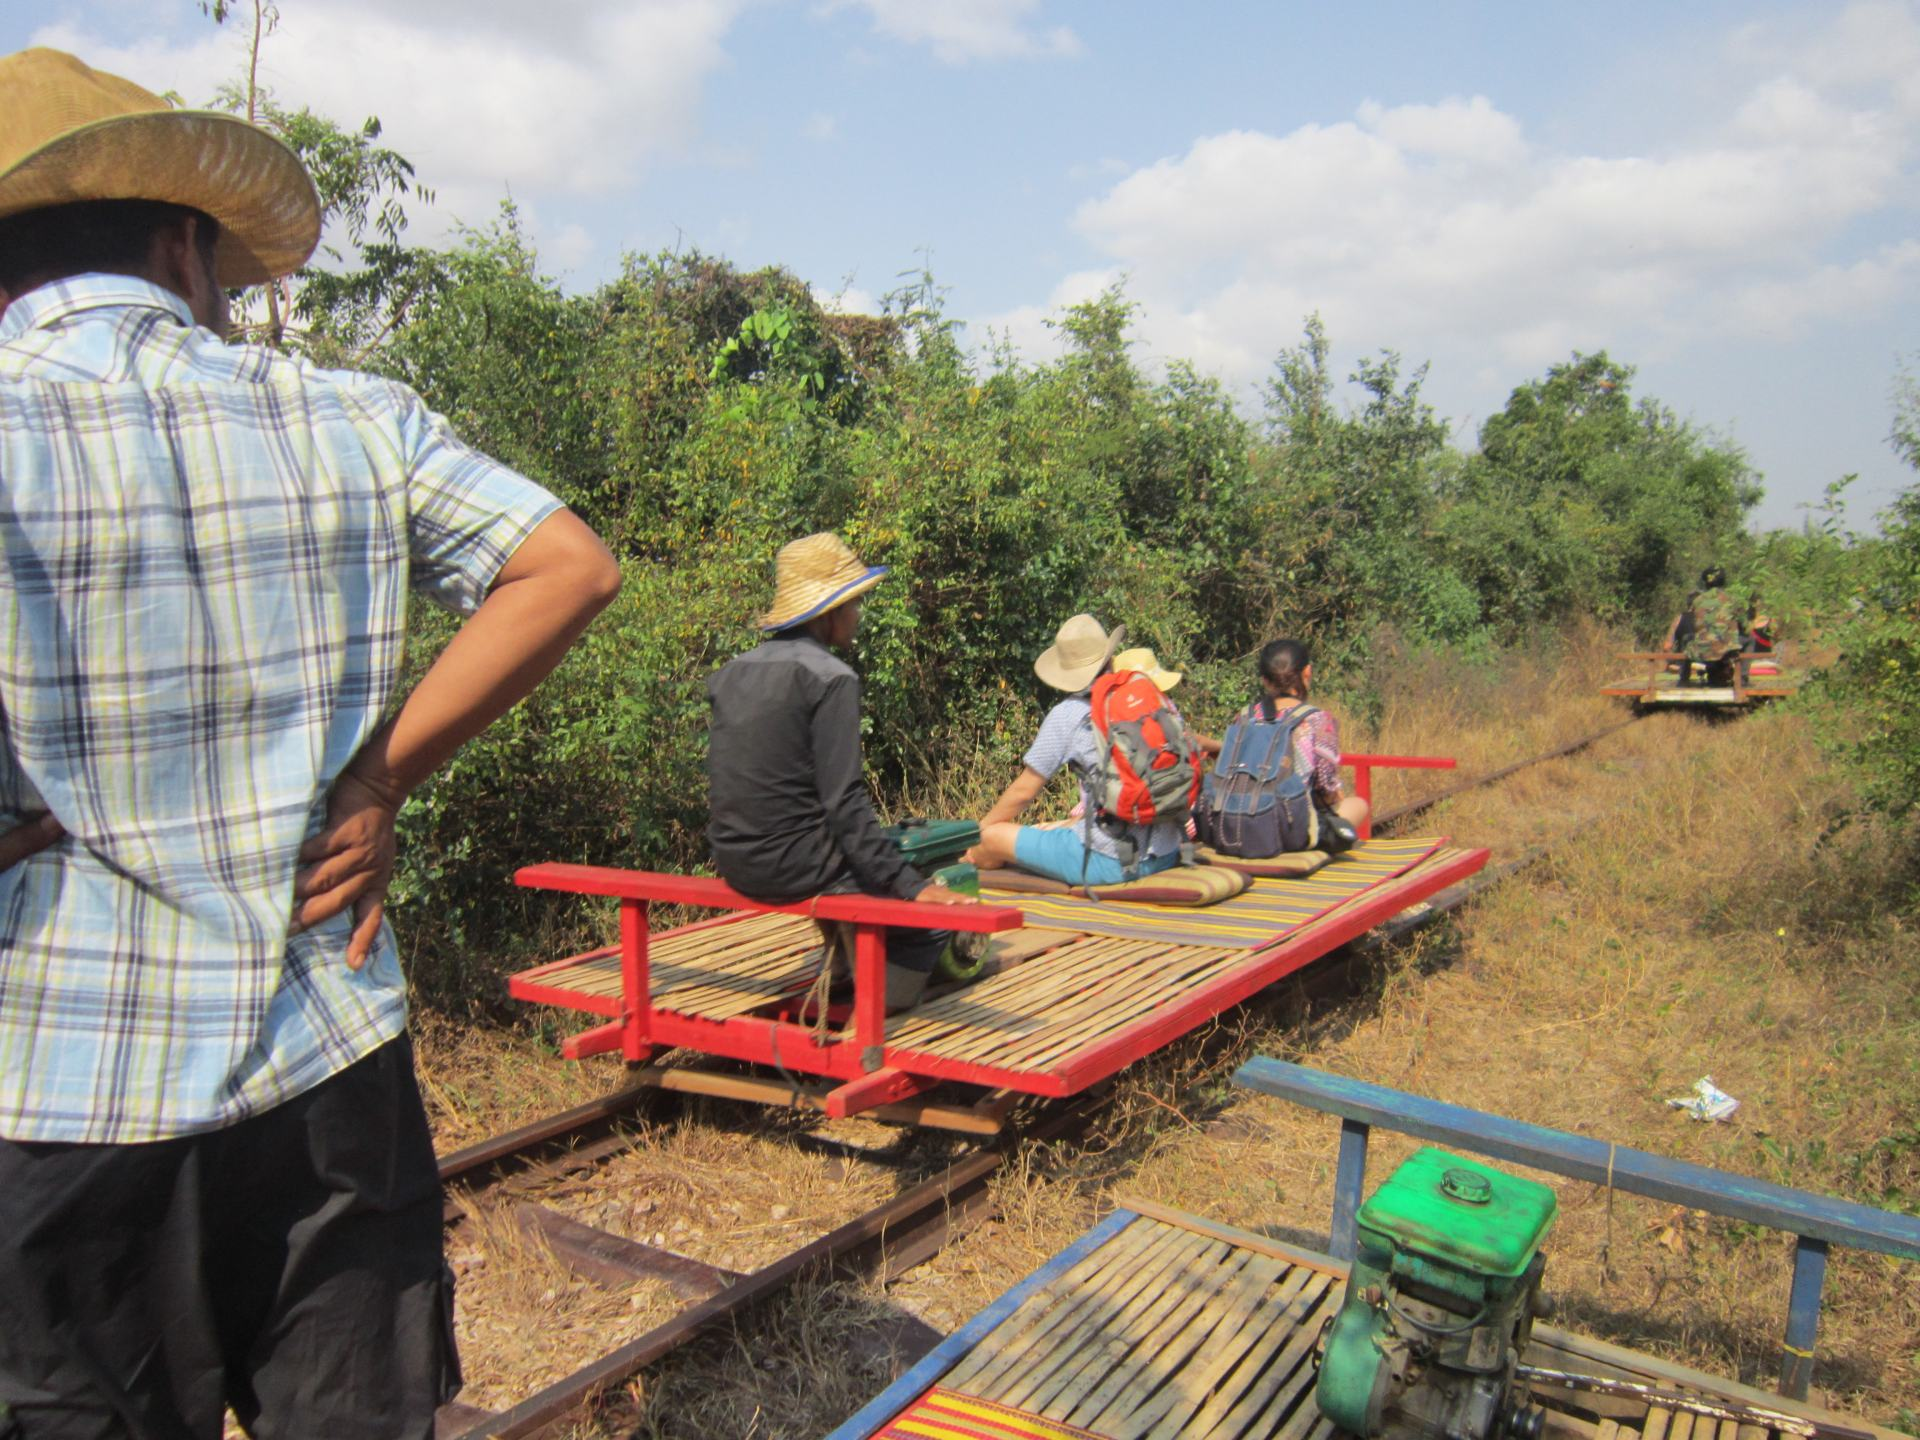 People riding the Bamboo train, one of the recommended activities on this Cambodia Itinerary.